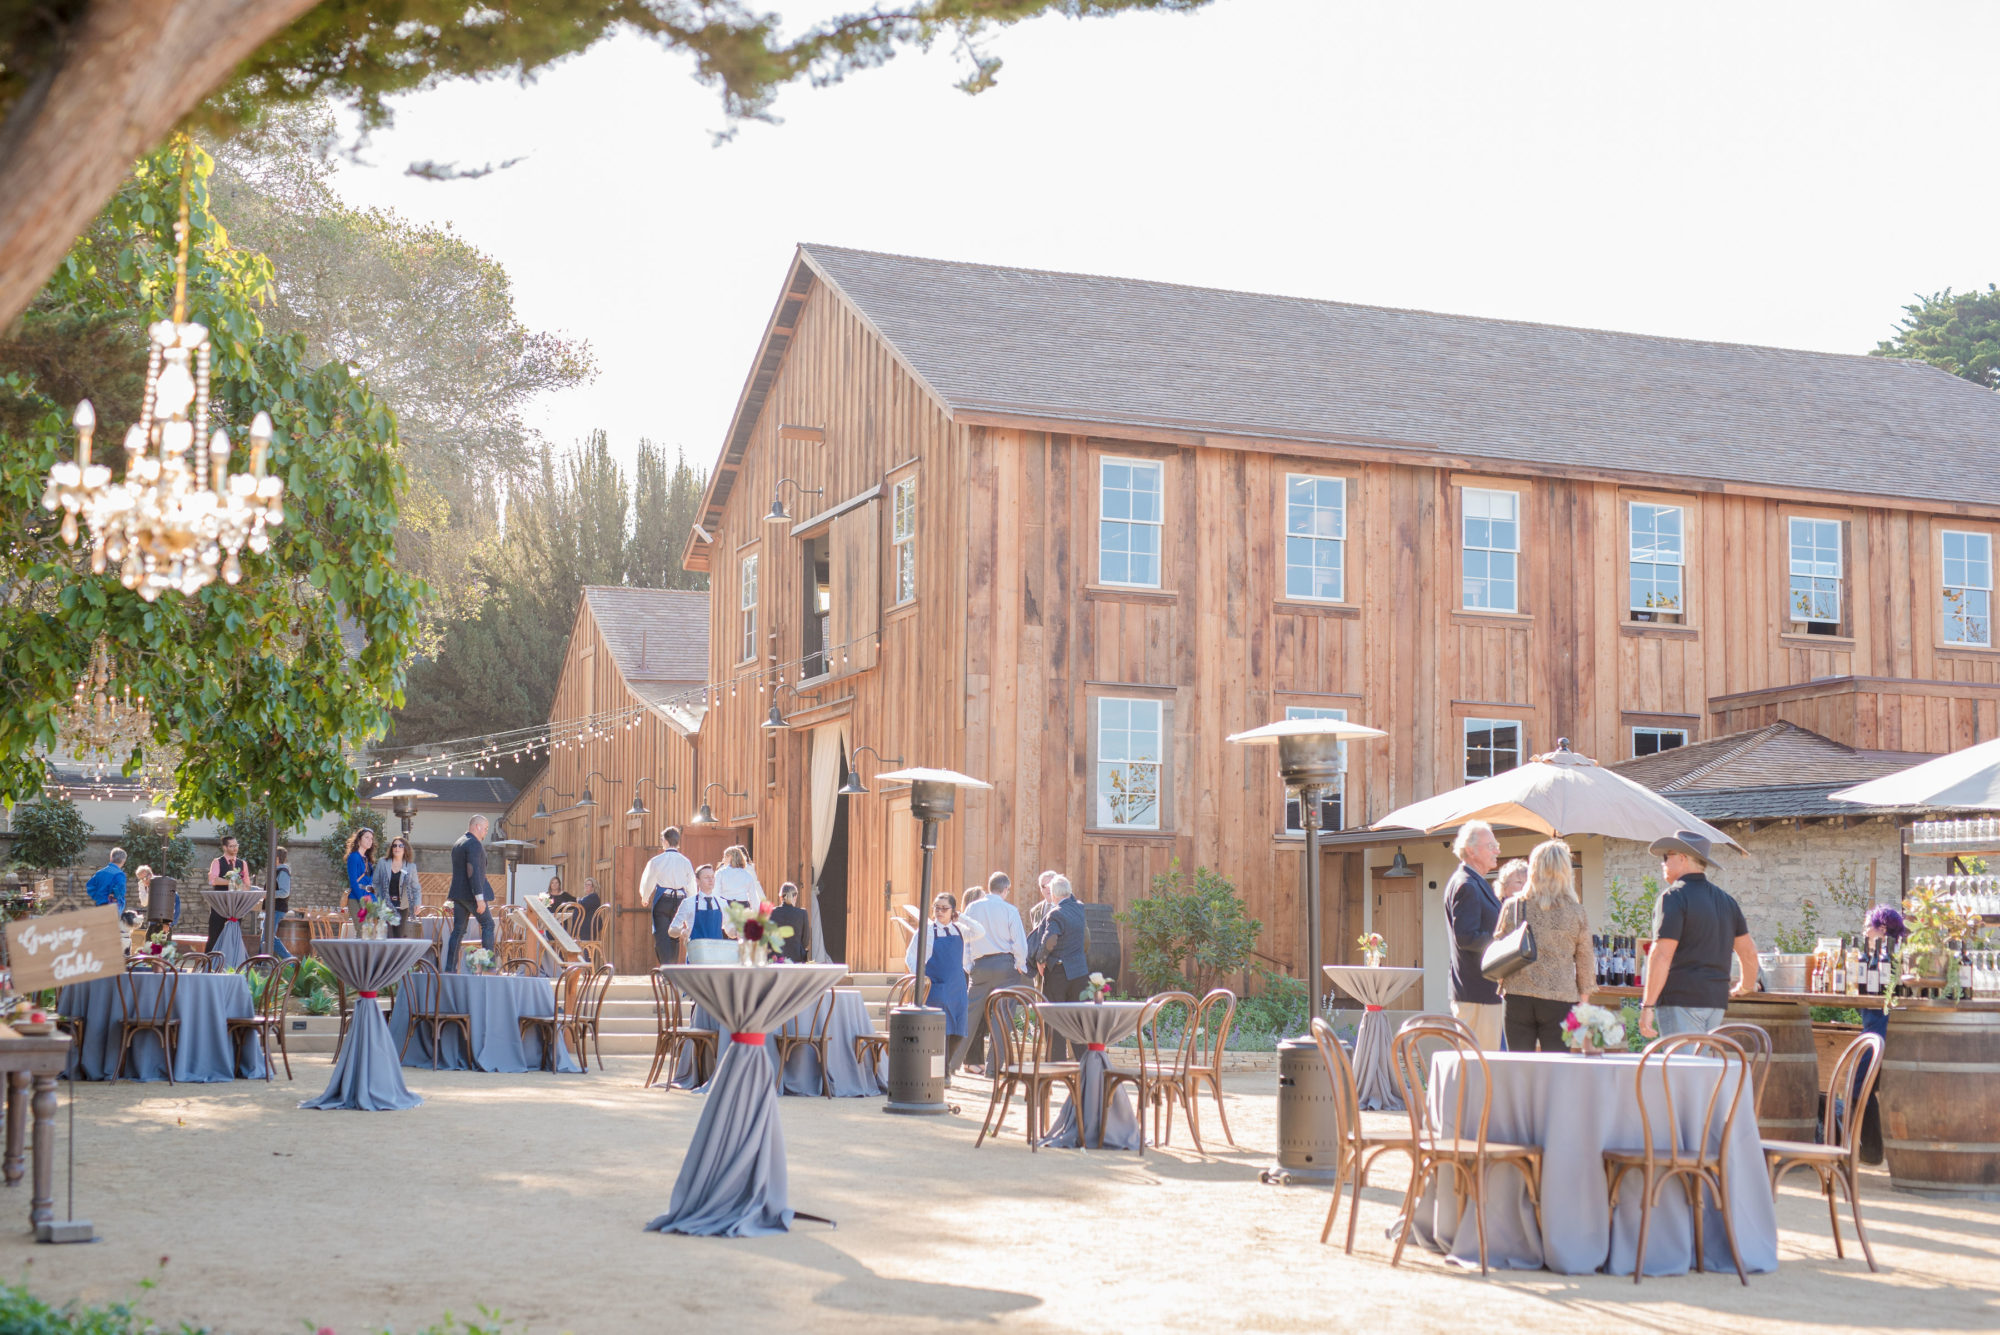 Getting ready for Corporate event at Cooper Molera Barns in Monterey